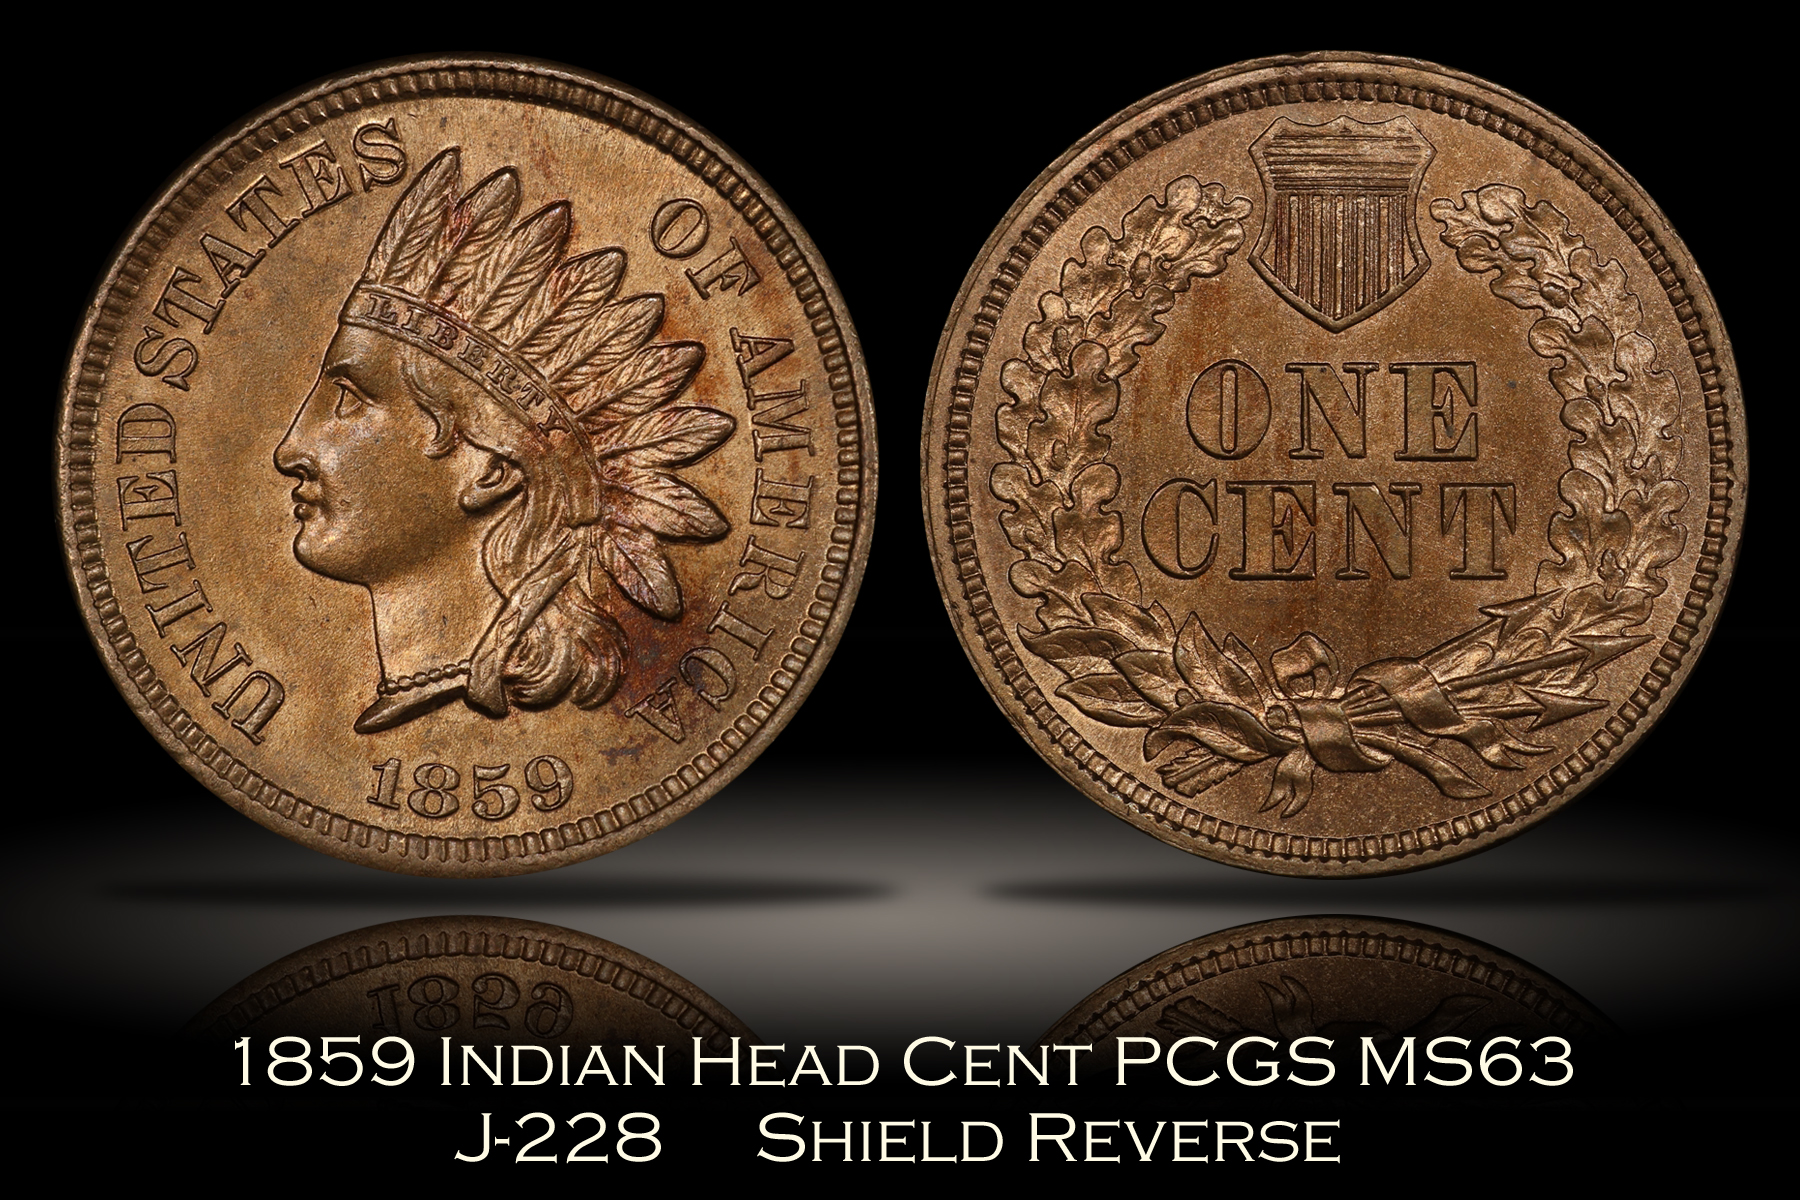 1859 Shield Reverse J-228 Indian Head Cent PCGS MS63